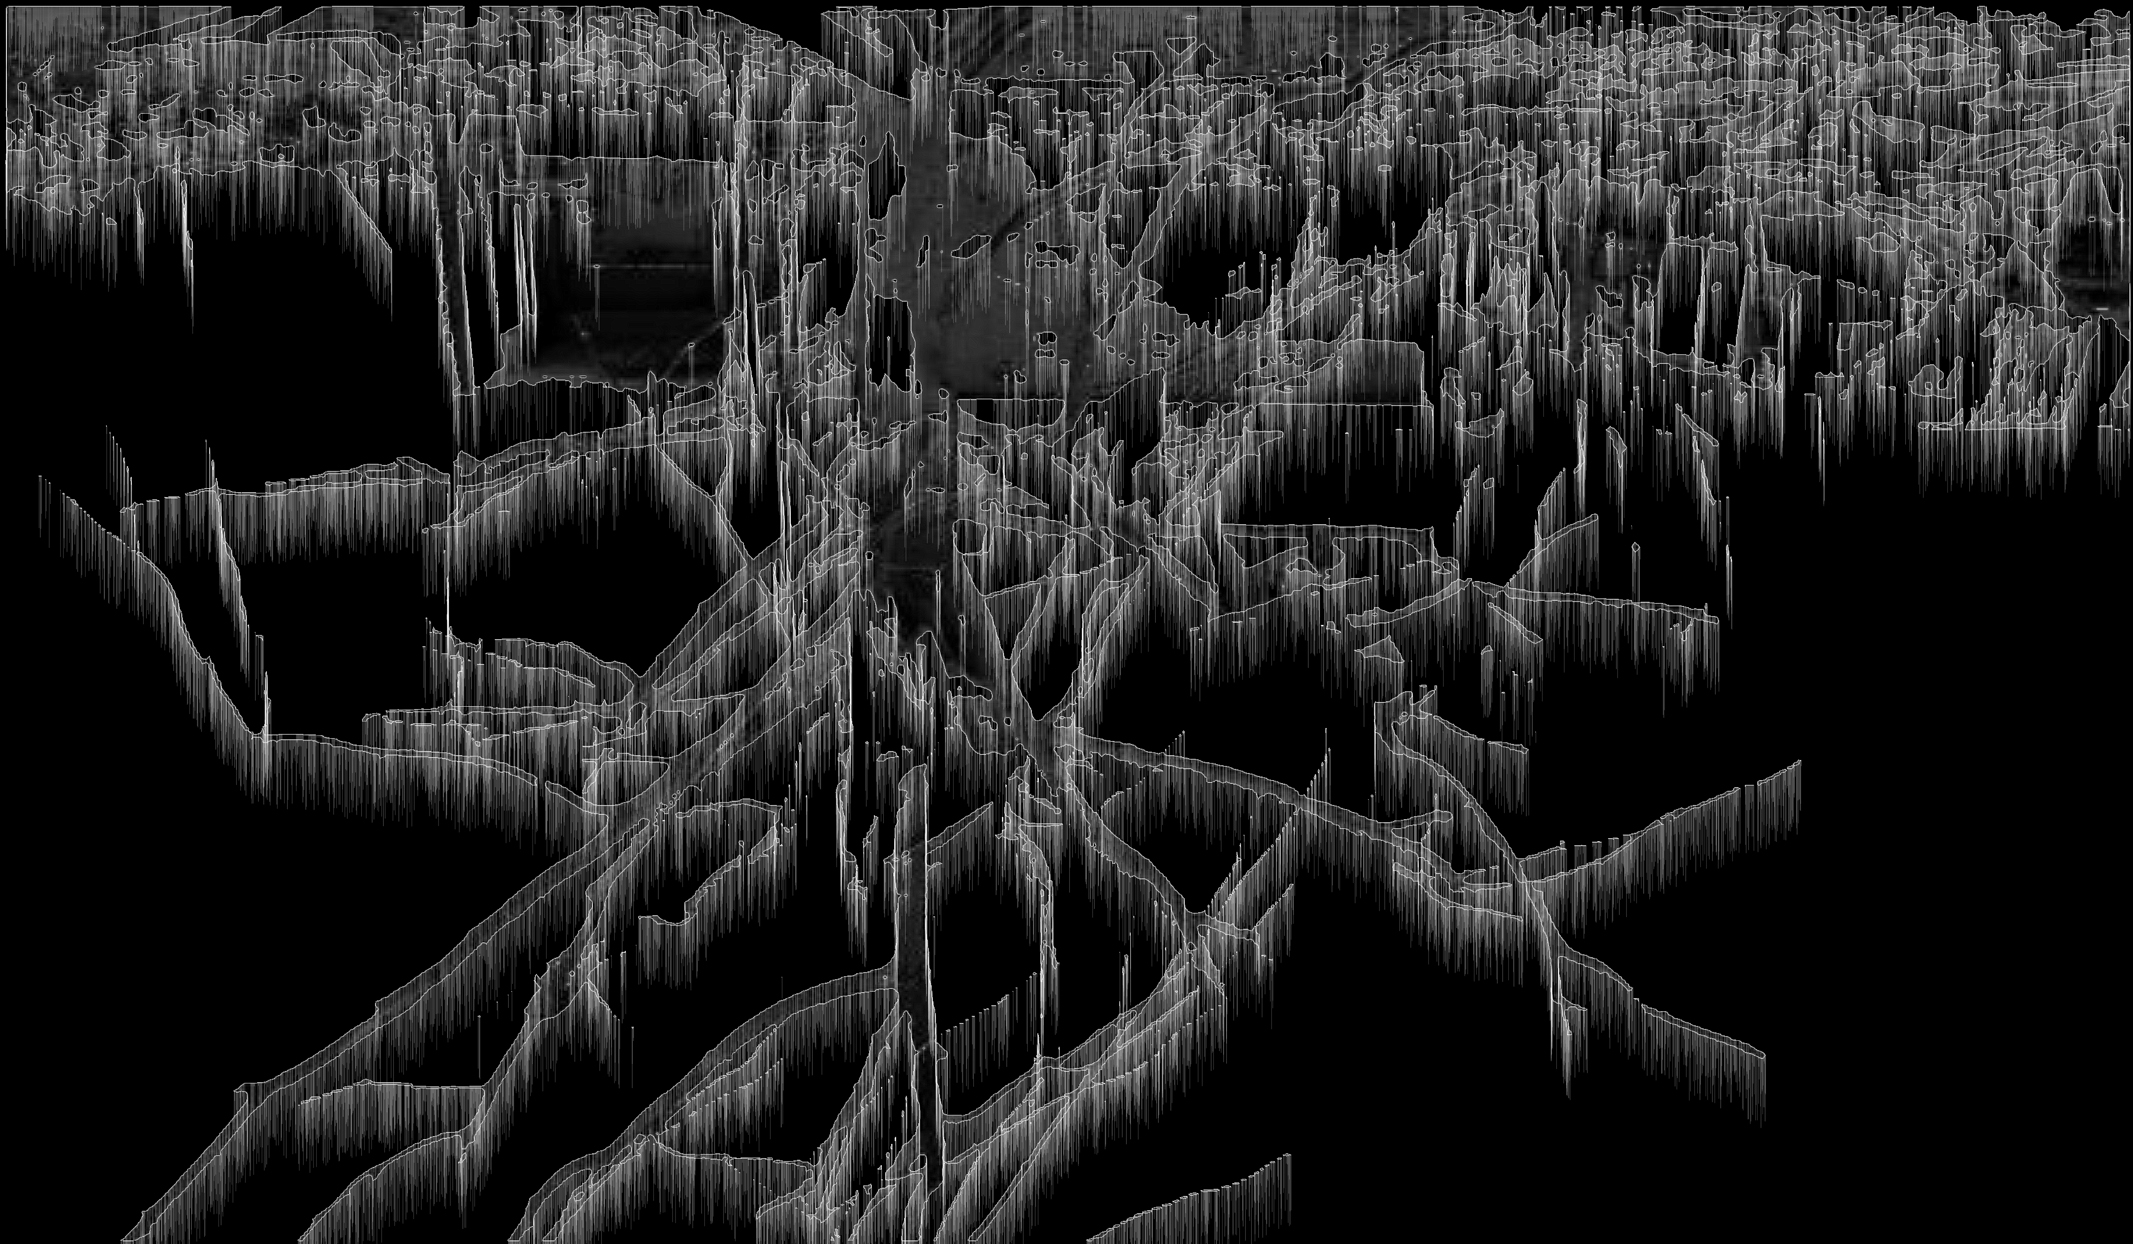 From a Static to Oscilliatory State (and Back Again), 2013, software generated digital archival print 1/9